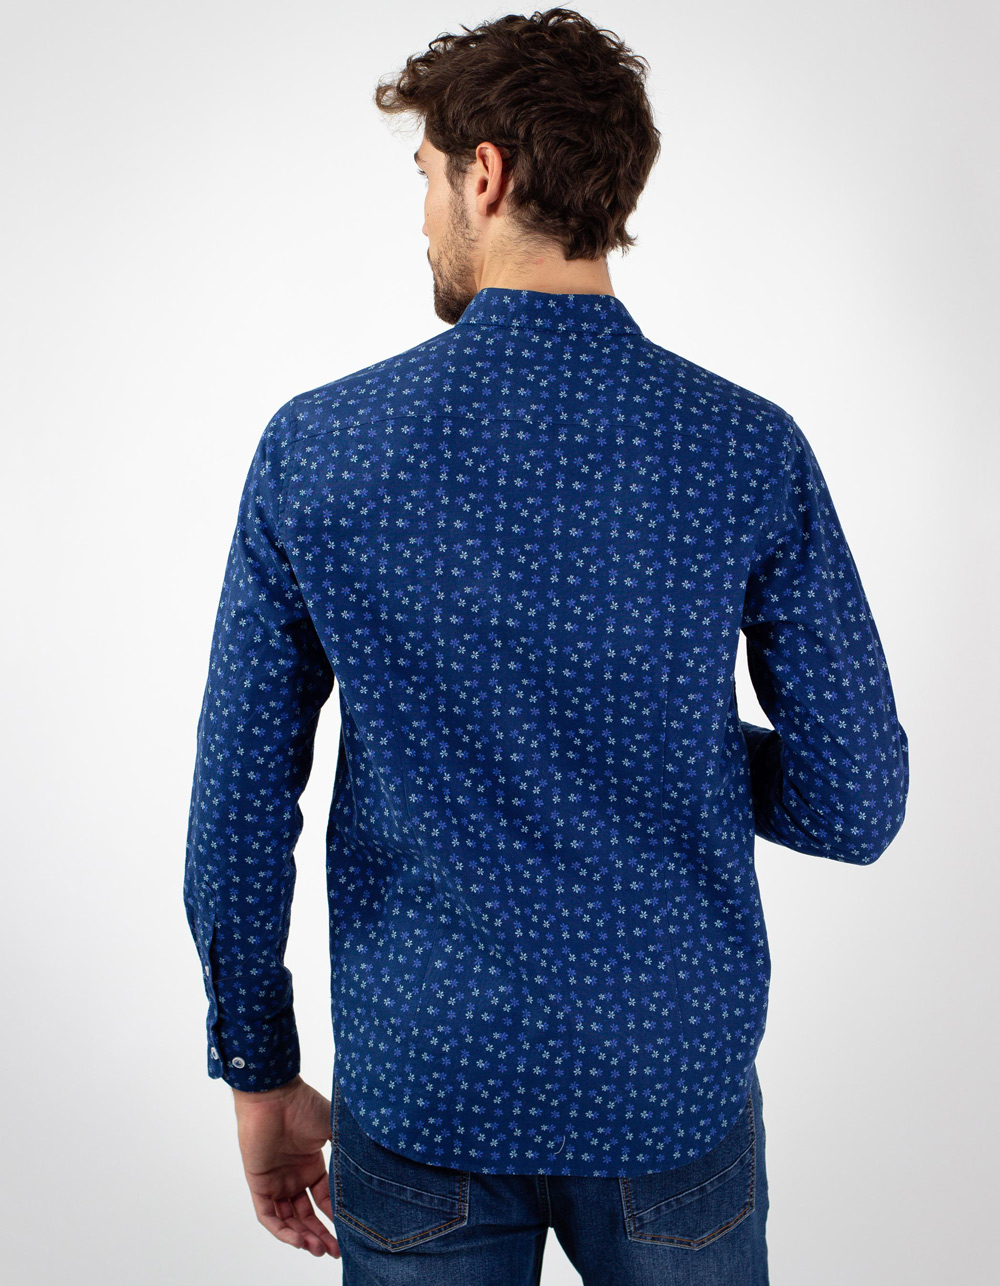 Camisa marino estampada flores azules - Backside